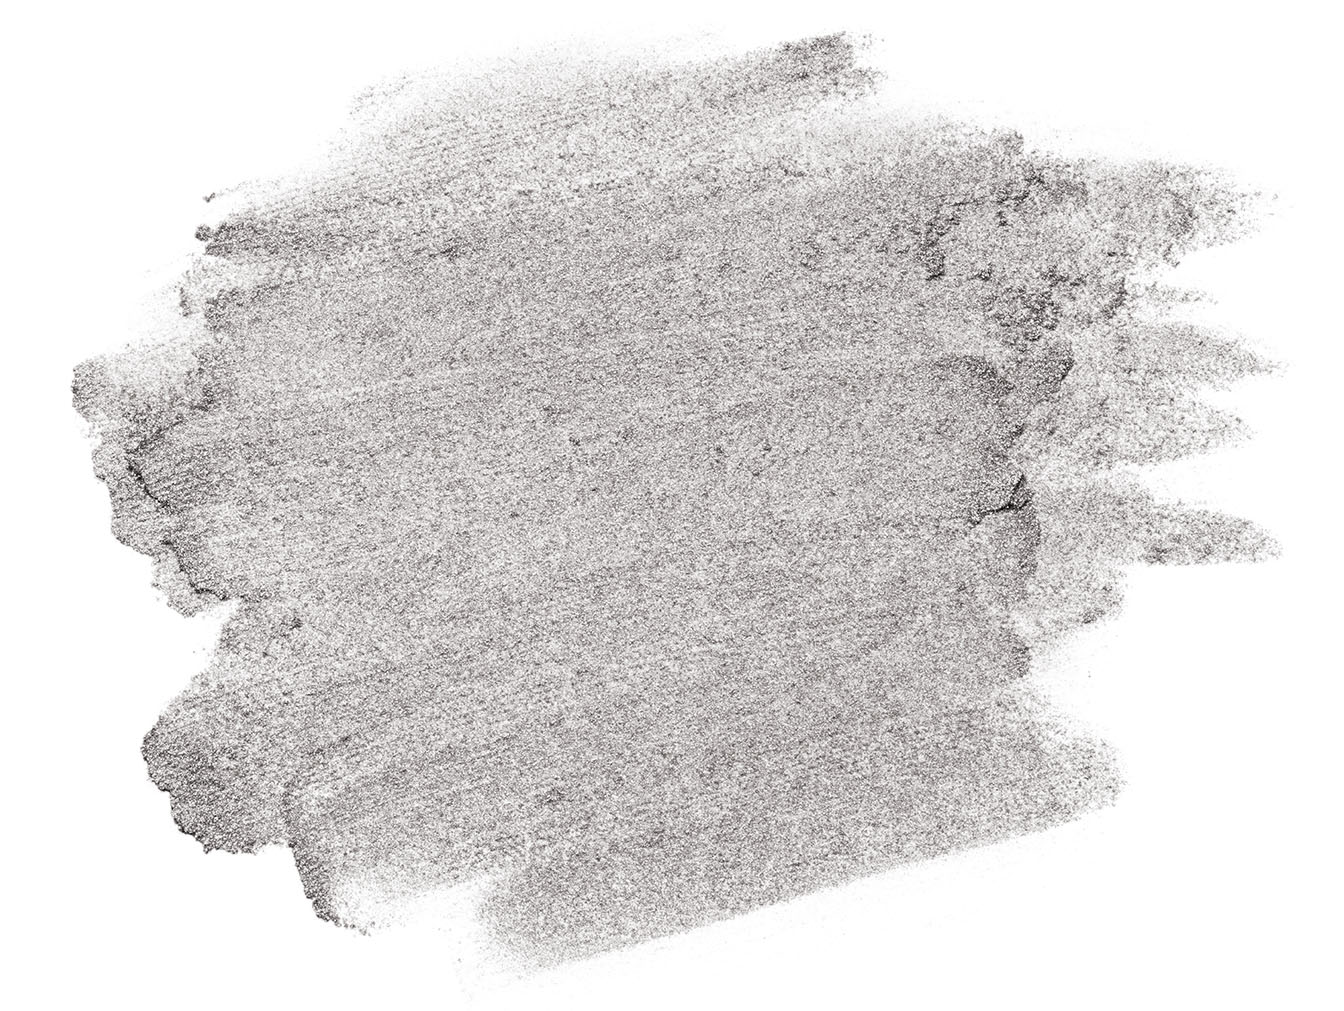 Festive shimmery gray brush stroke